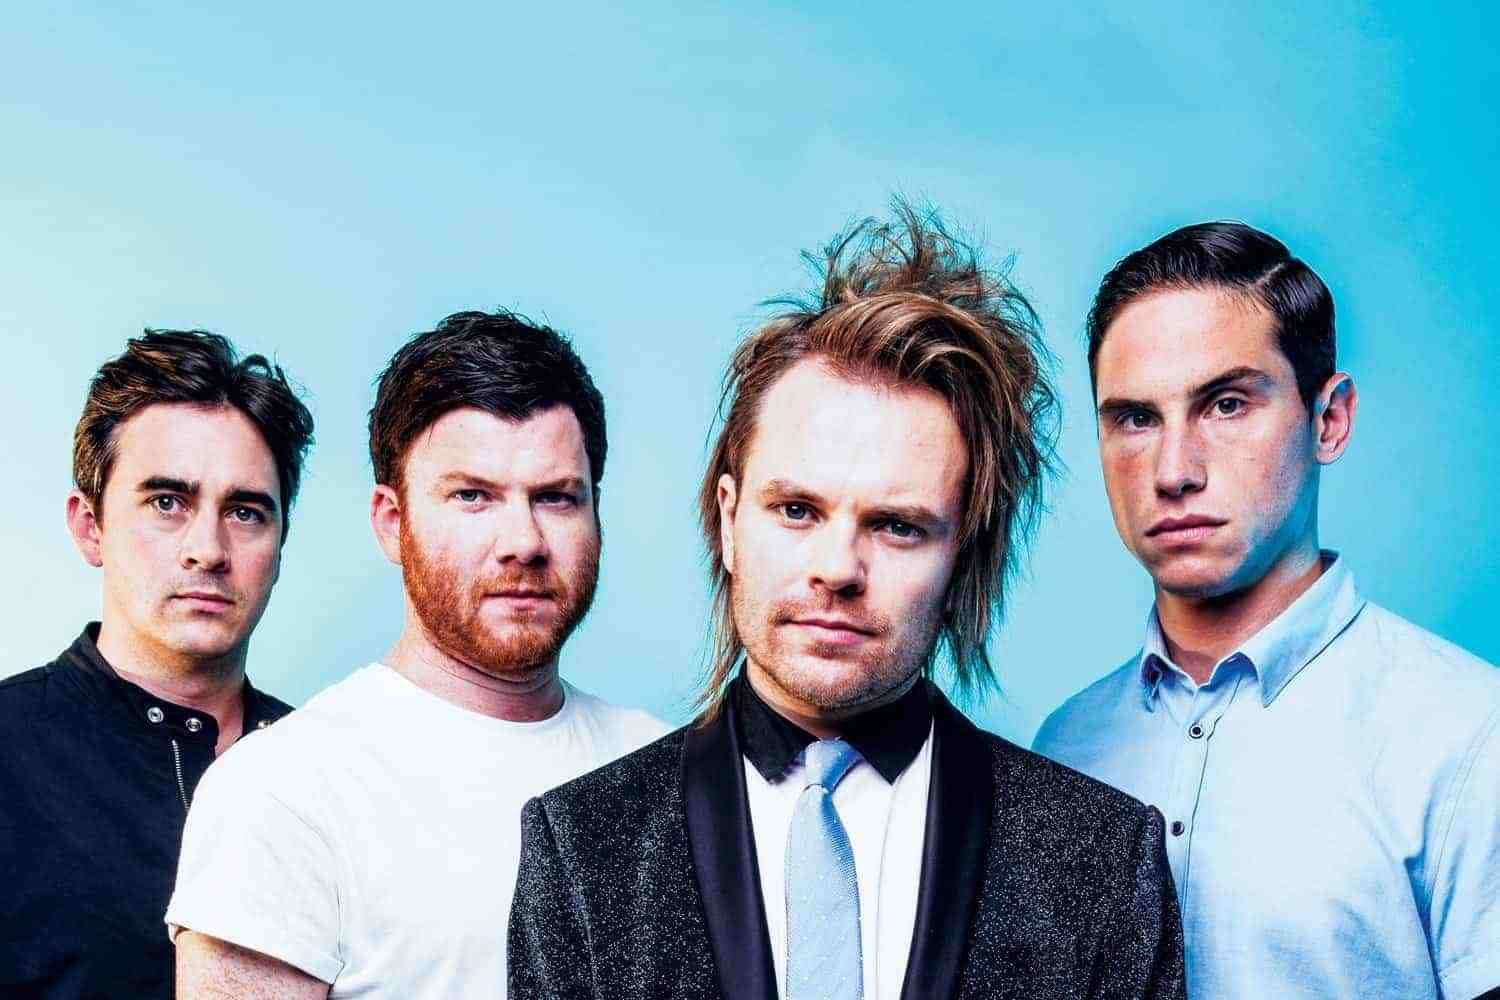 Enter Shikari stop by for a chat ahead of their tiny charity gig for Nordoff Robbins